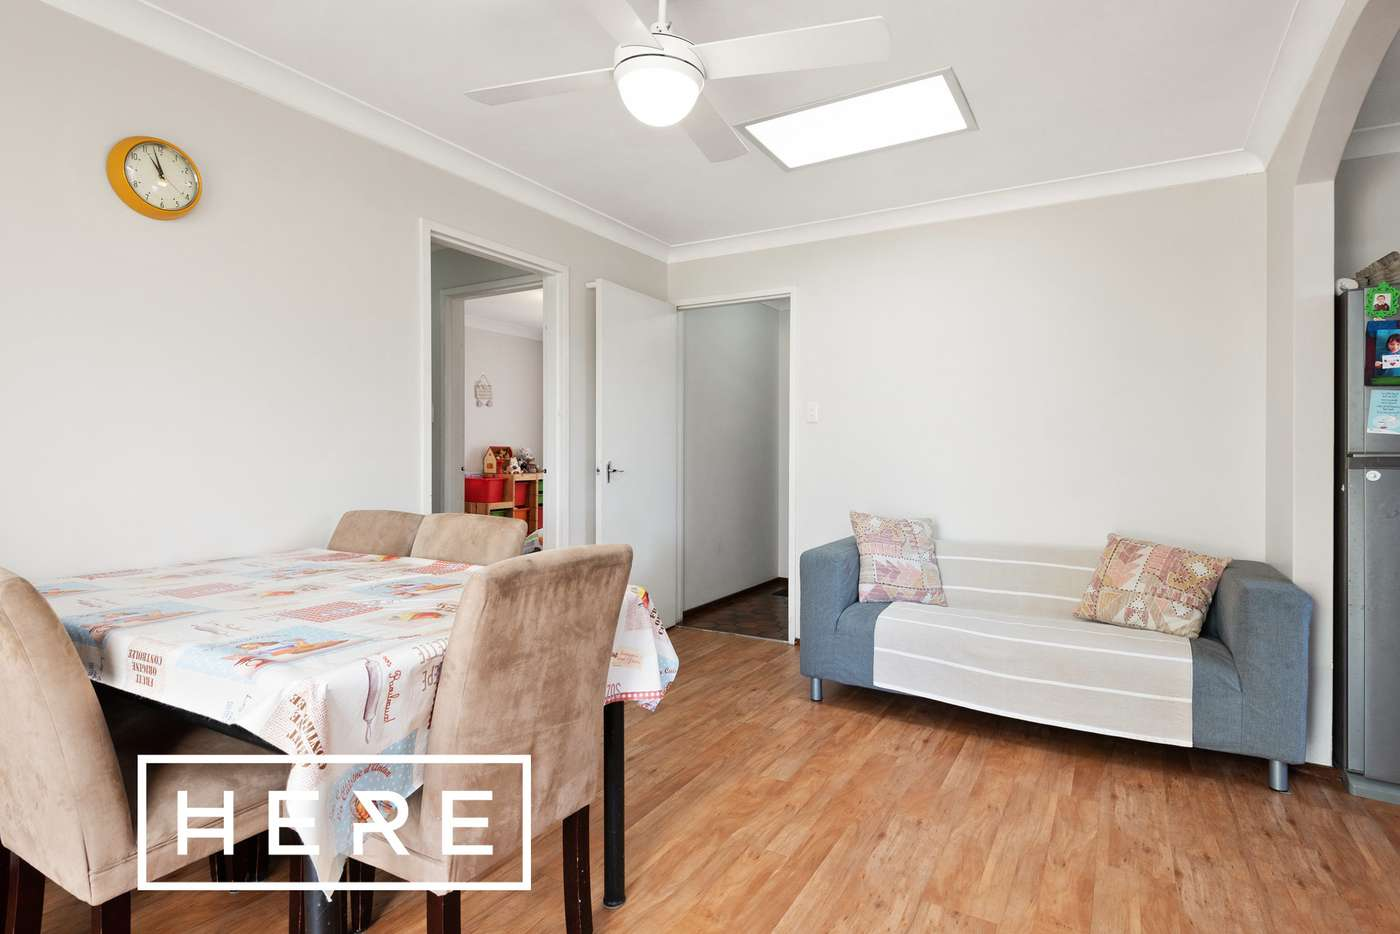 Seventh view of Homely house listing, 7 Rudall Way, Padbury WA 6025